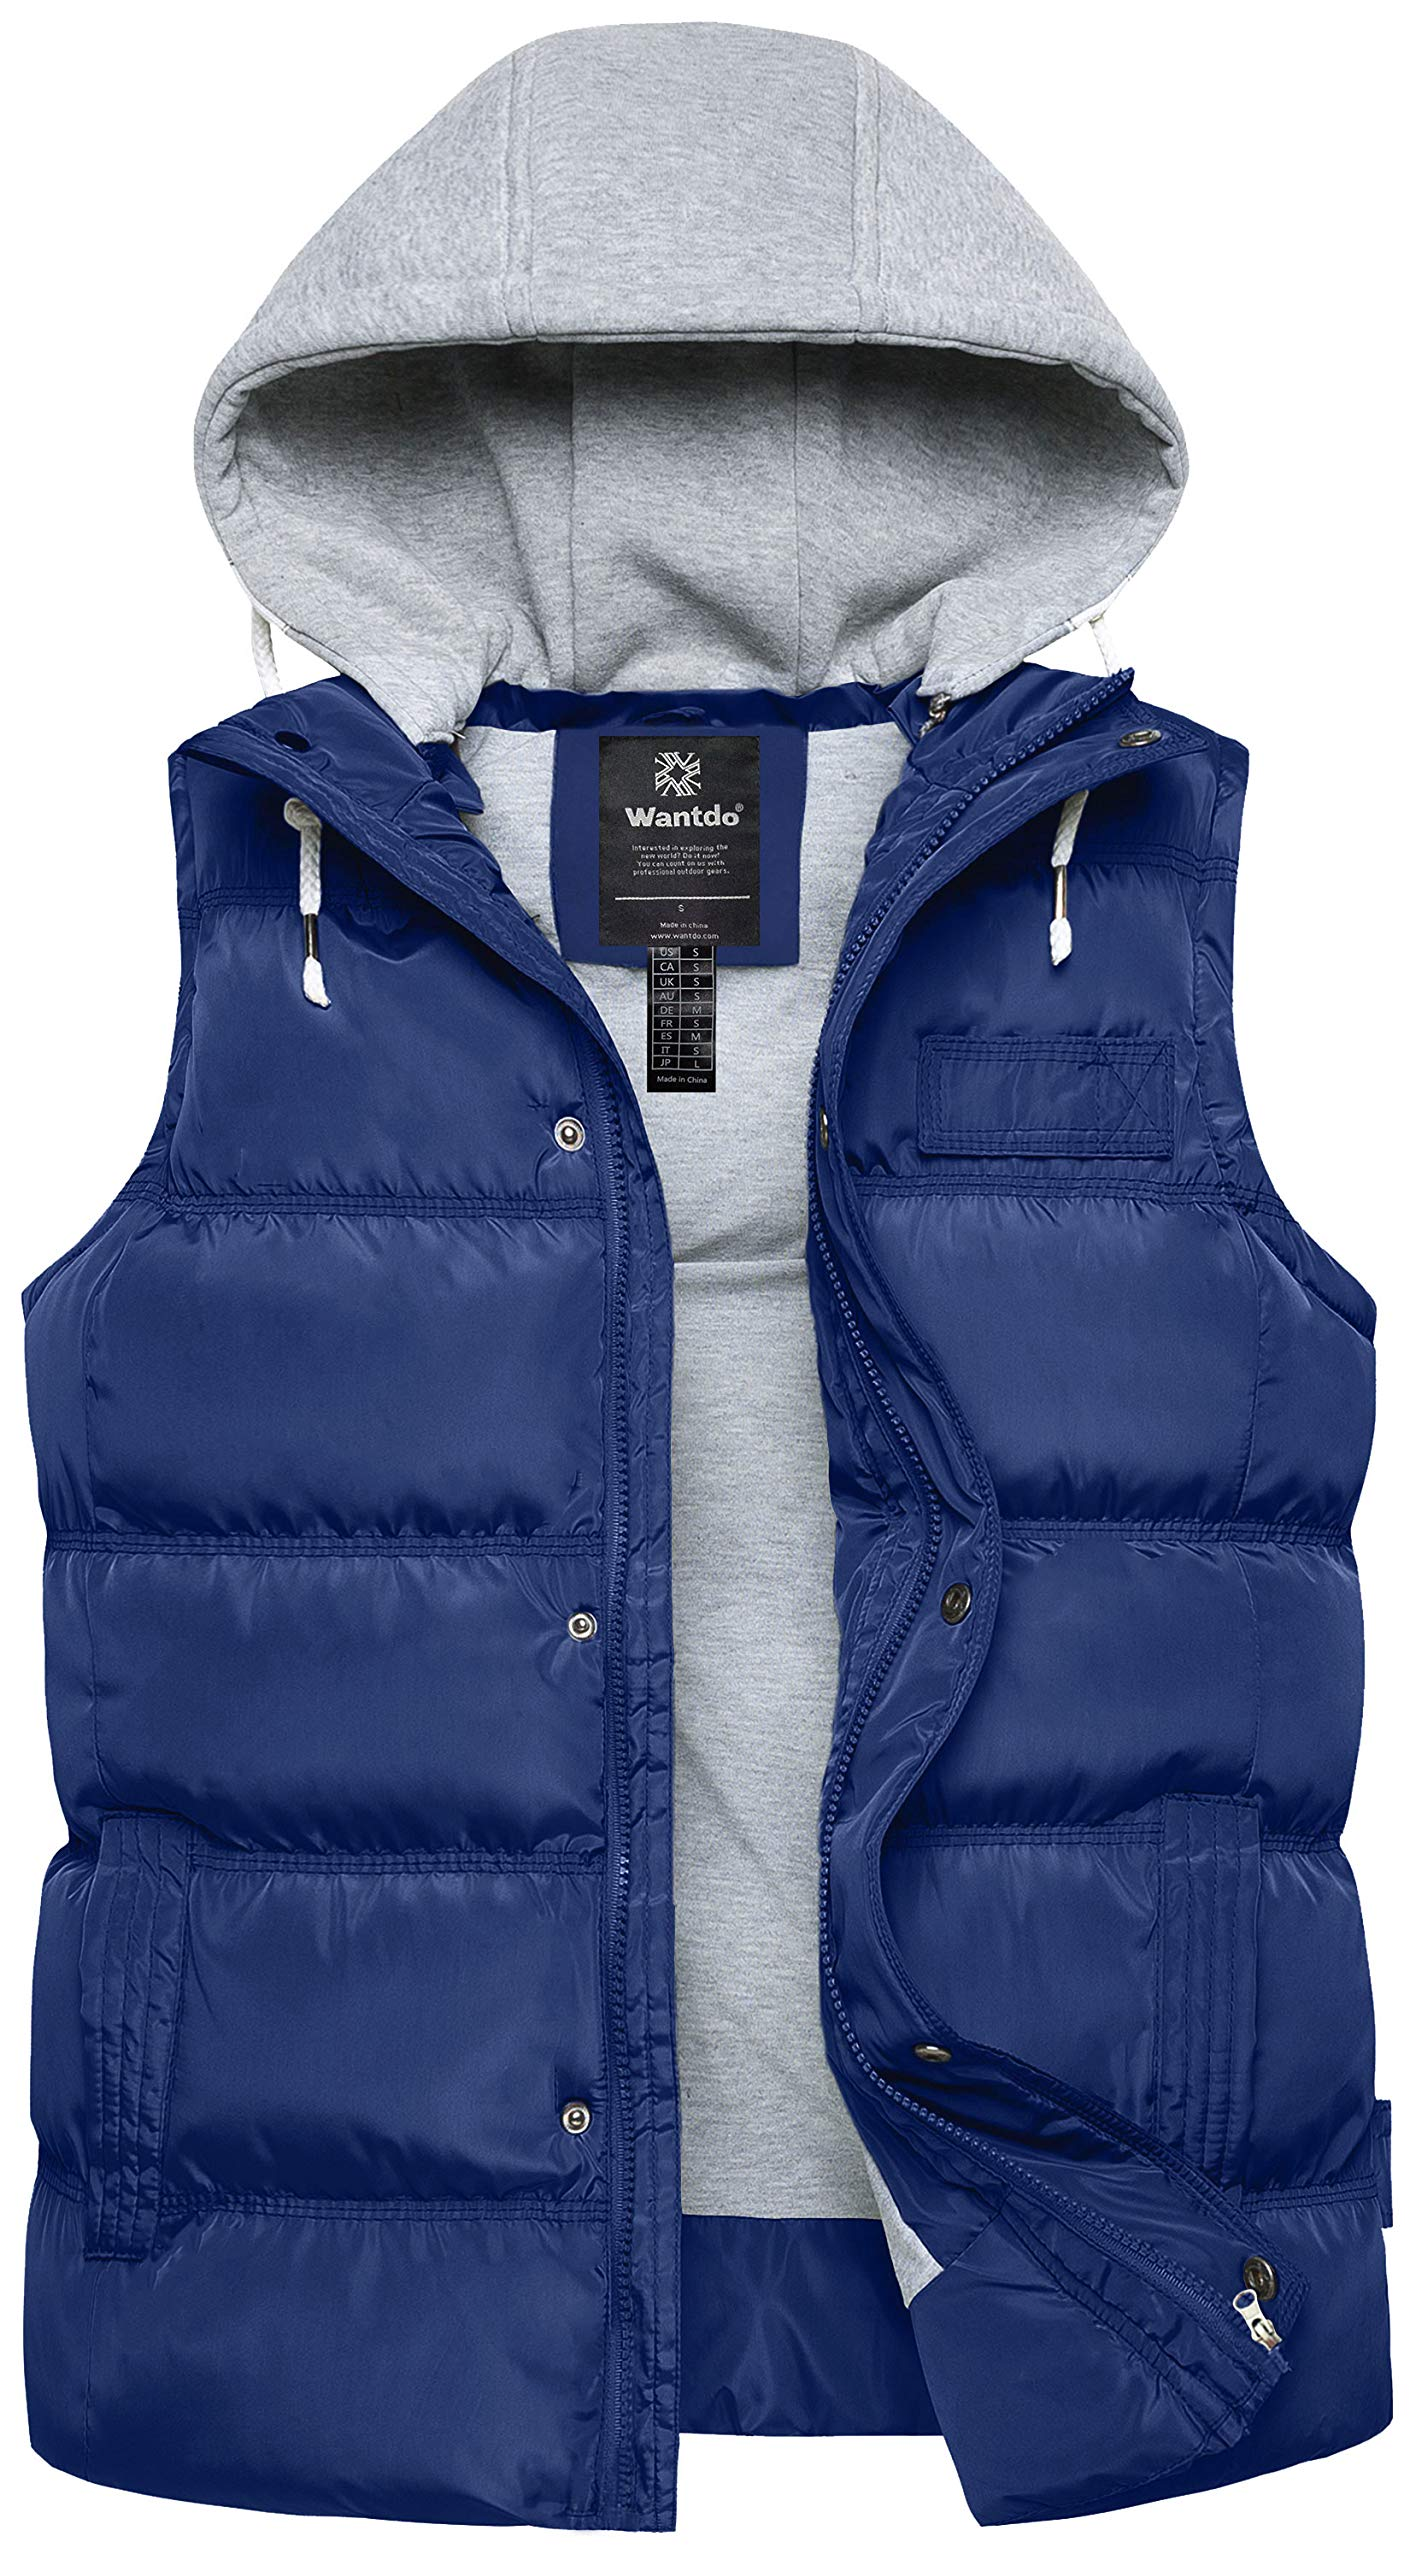 Wantdo Women's Winter Puffer Coat Quilted Gilet Thickened Vest Large Blue by Wantdo